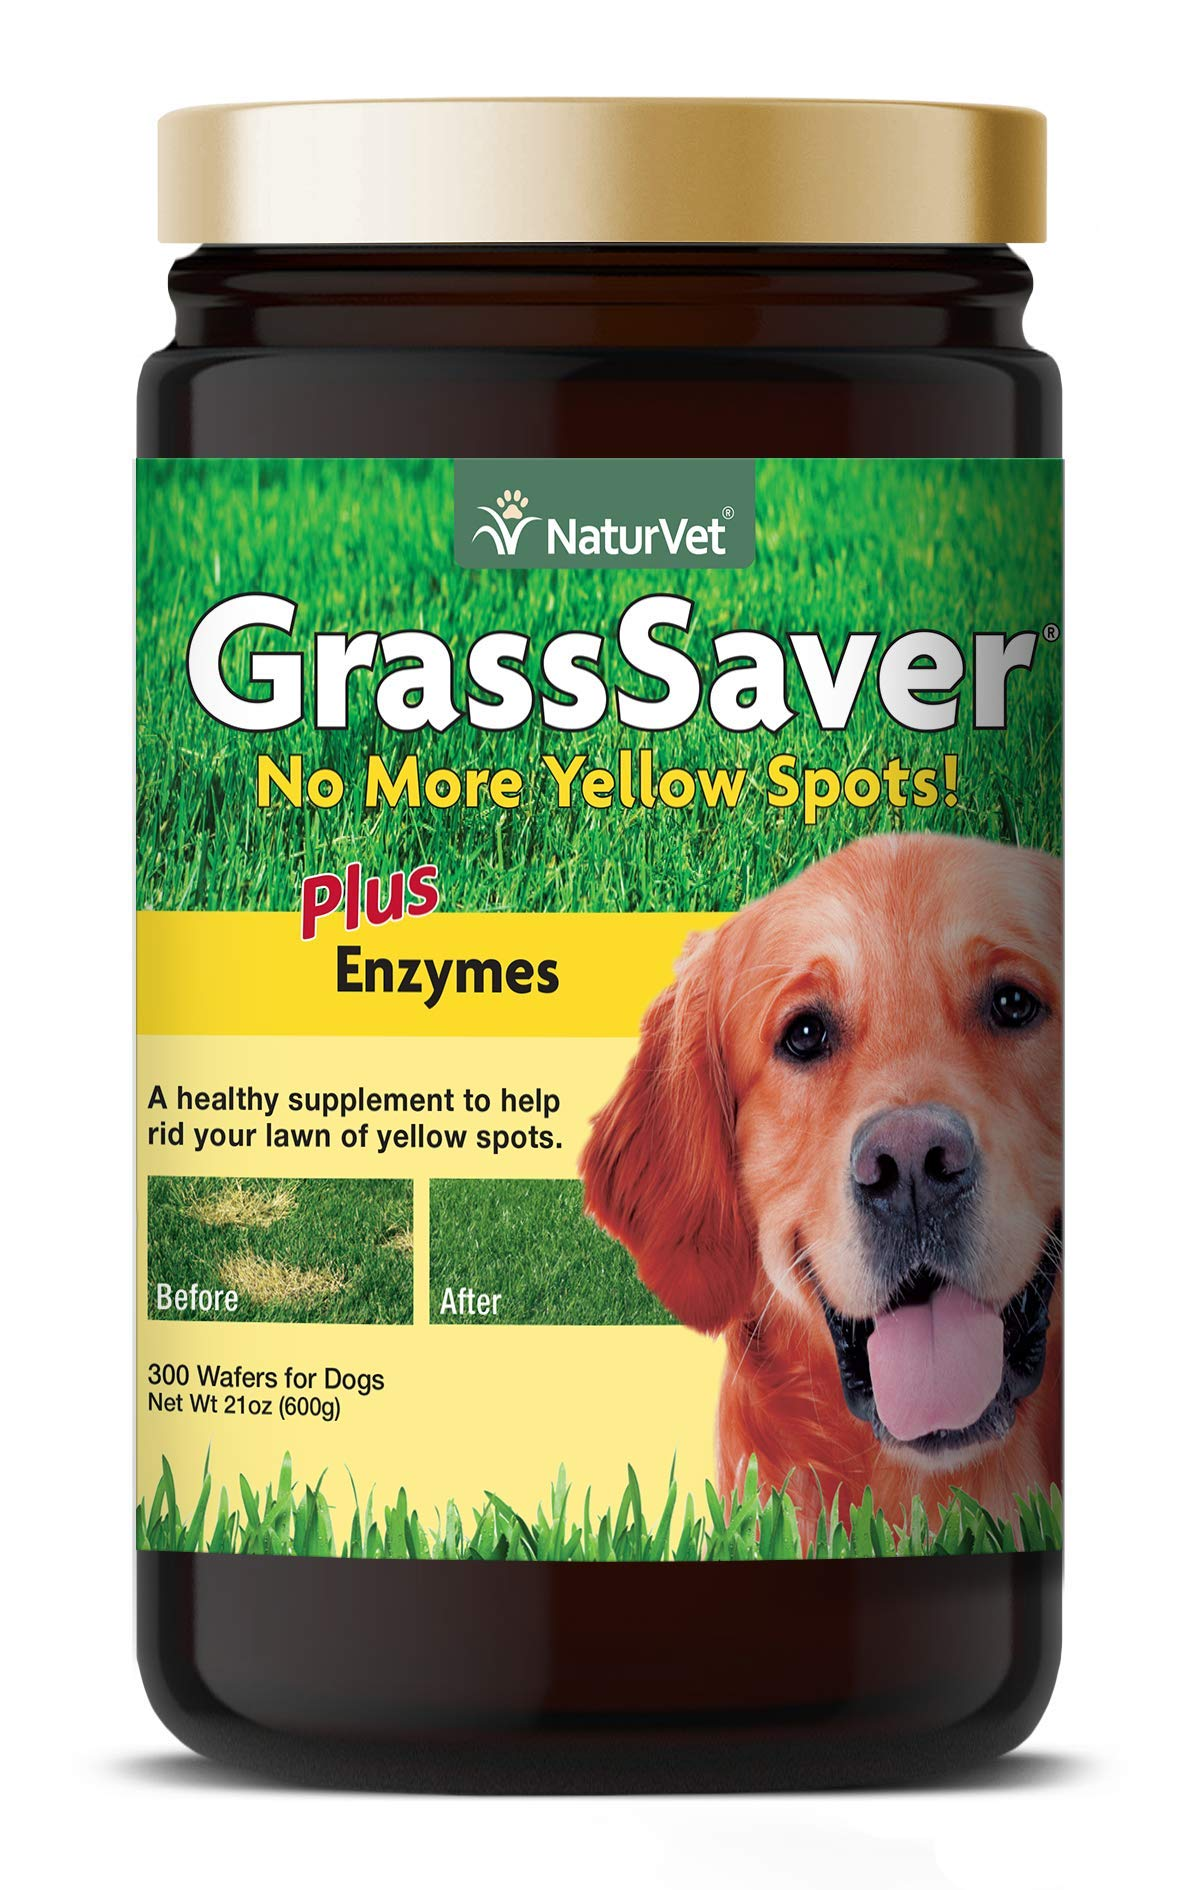 NaturVet - GrassSaver Wafers For Dogs Plus Enzymes - 300 Wafers - Healthy Supplement to Help Rid Your Lawn of Yellow Spots - Synergistic Combination of B-Complex Vitamins & Amino Acids by NaturVet